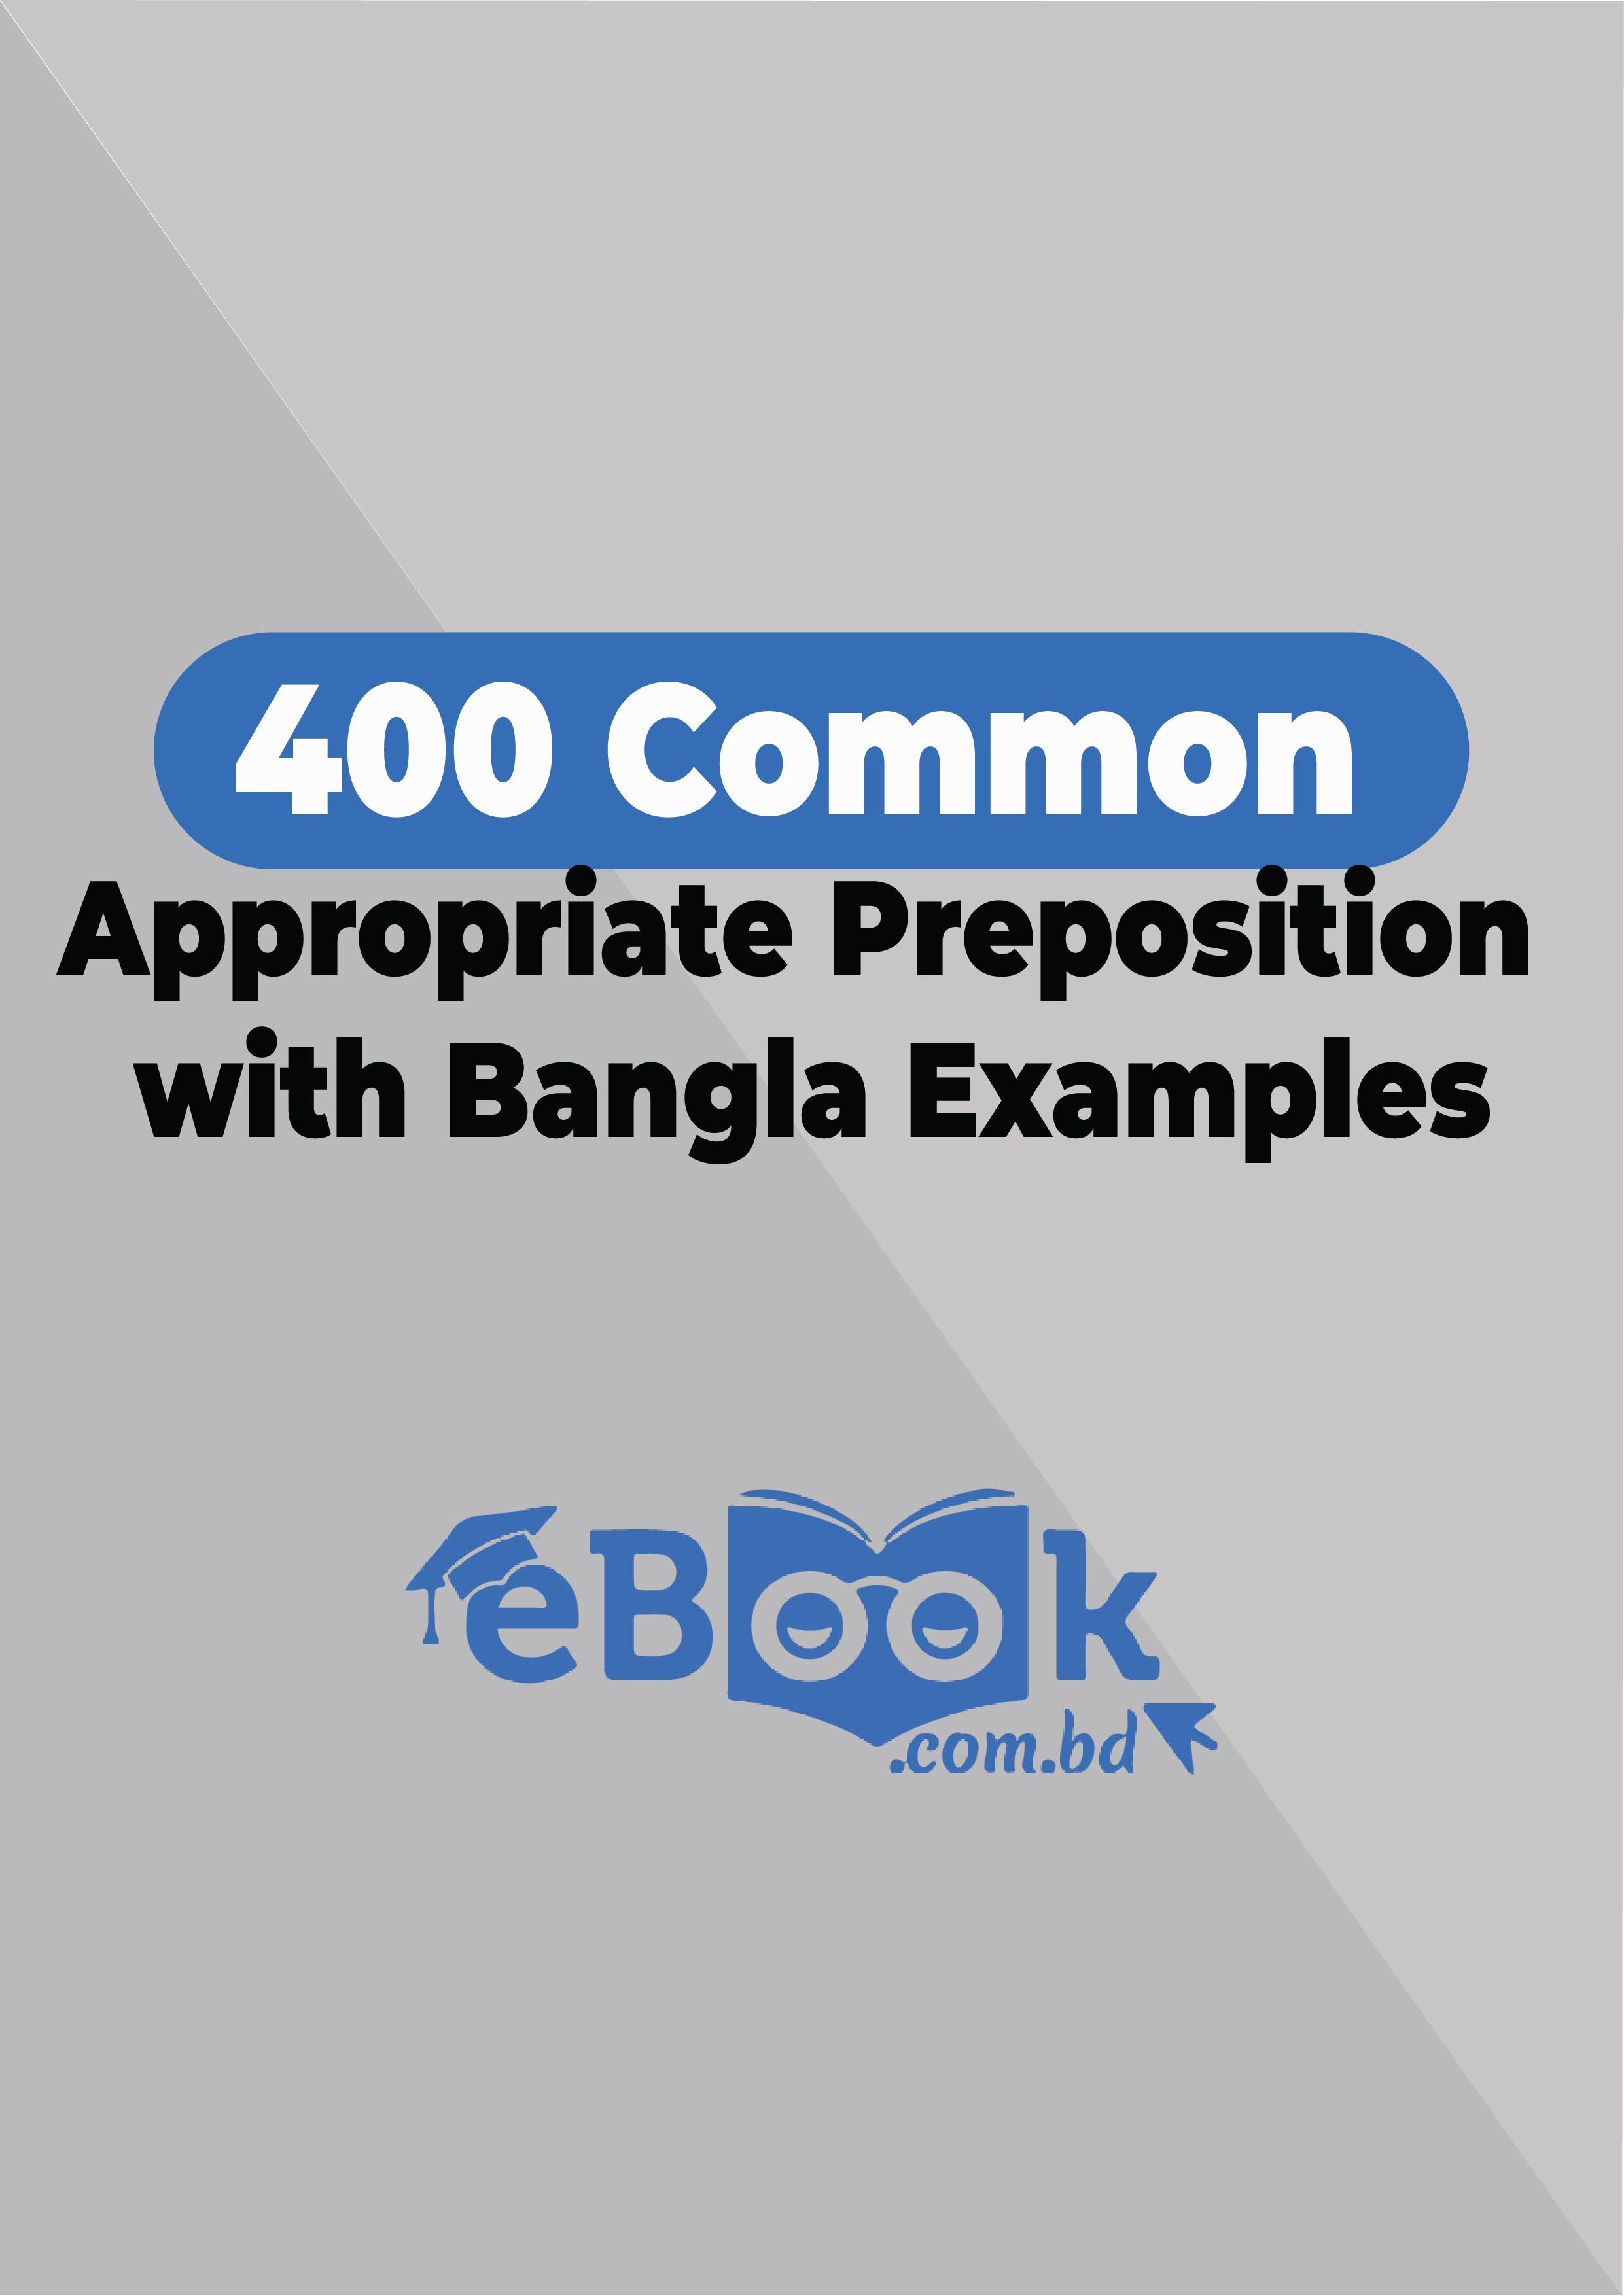 400 Common  Appropriate Preposition  with Bangla Examples - ৪০০ কমন এপ্রোপ্রিয়েট প্রিপোজিশন